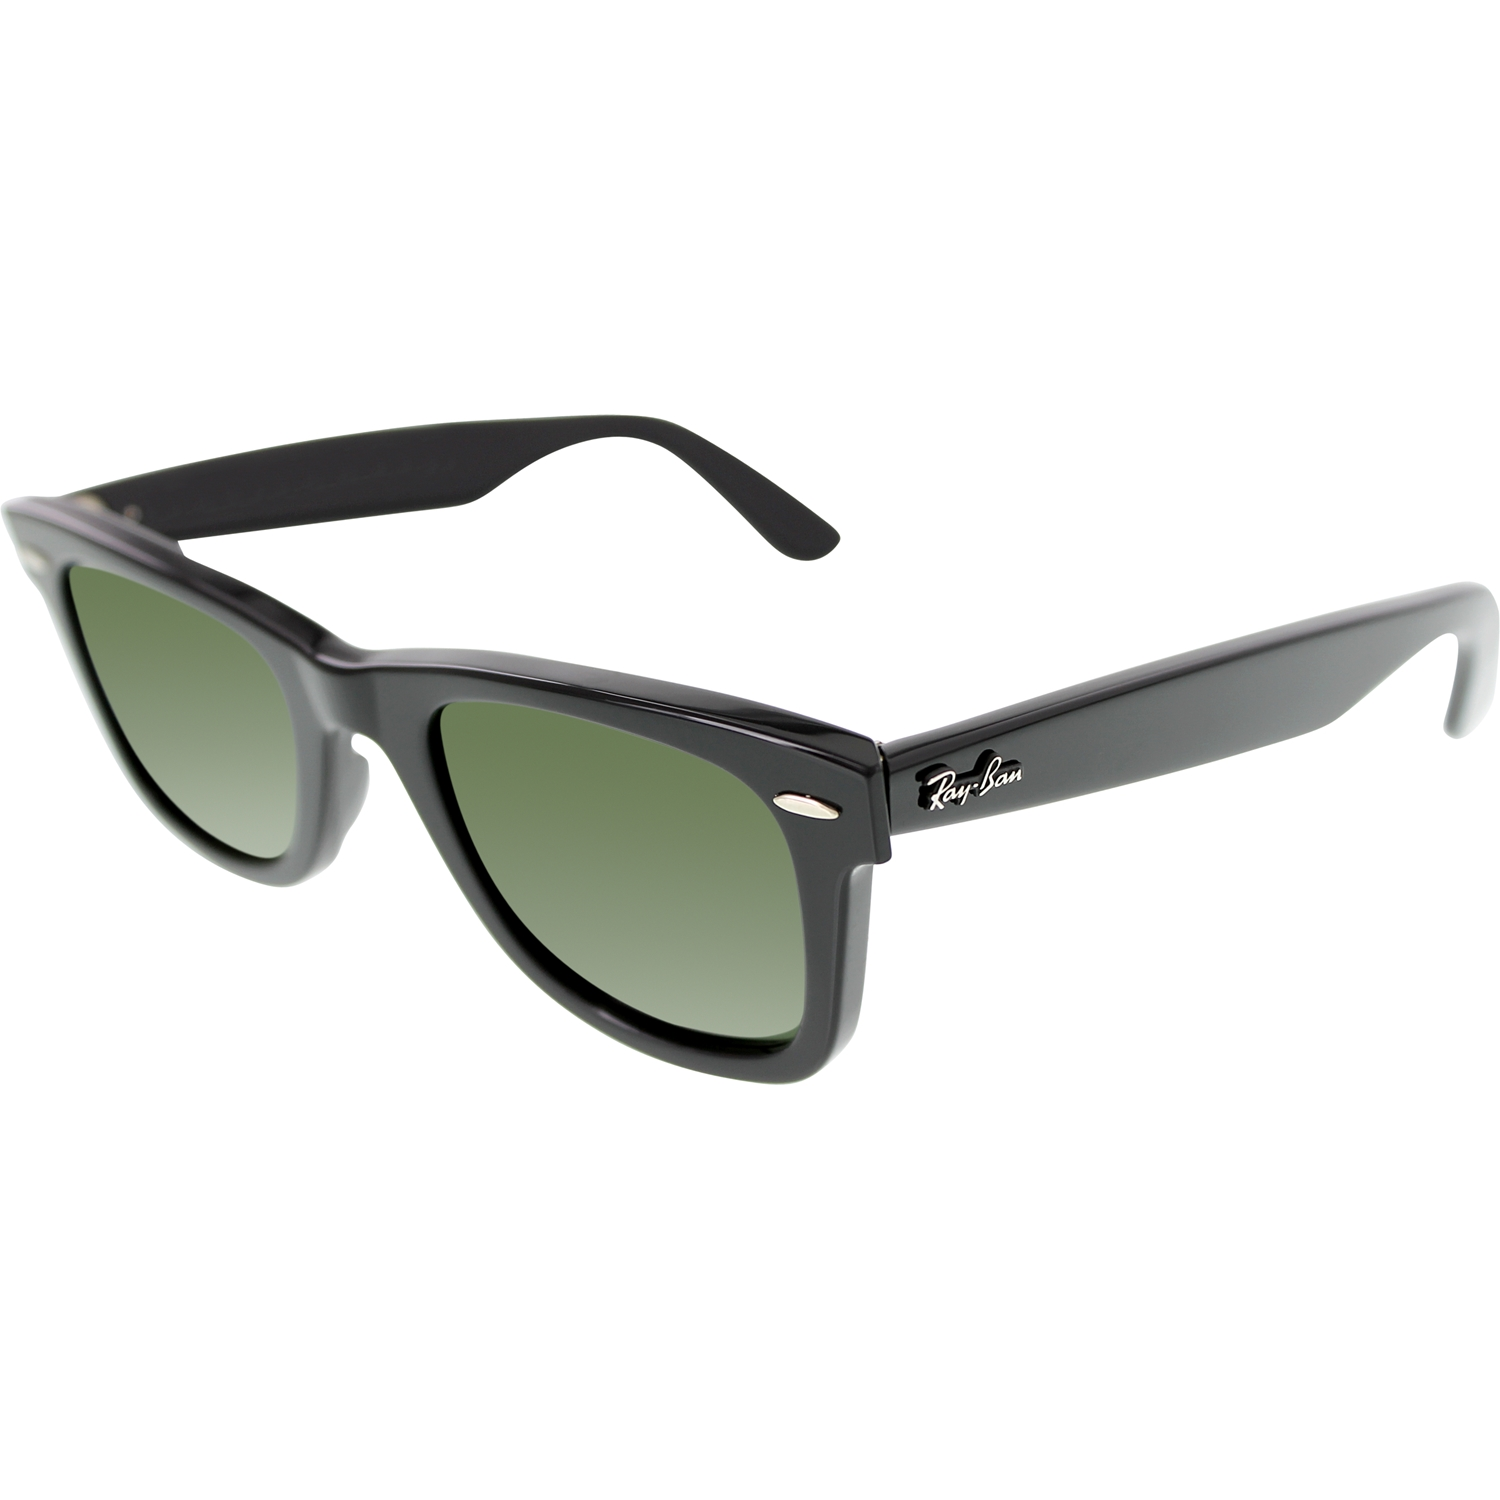 ray ban orb2140 cbjt  Ray-Ban Men's Original Wayfarer RB2140-901-47 Black Wayfarer Sunglasses